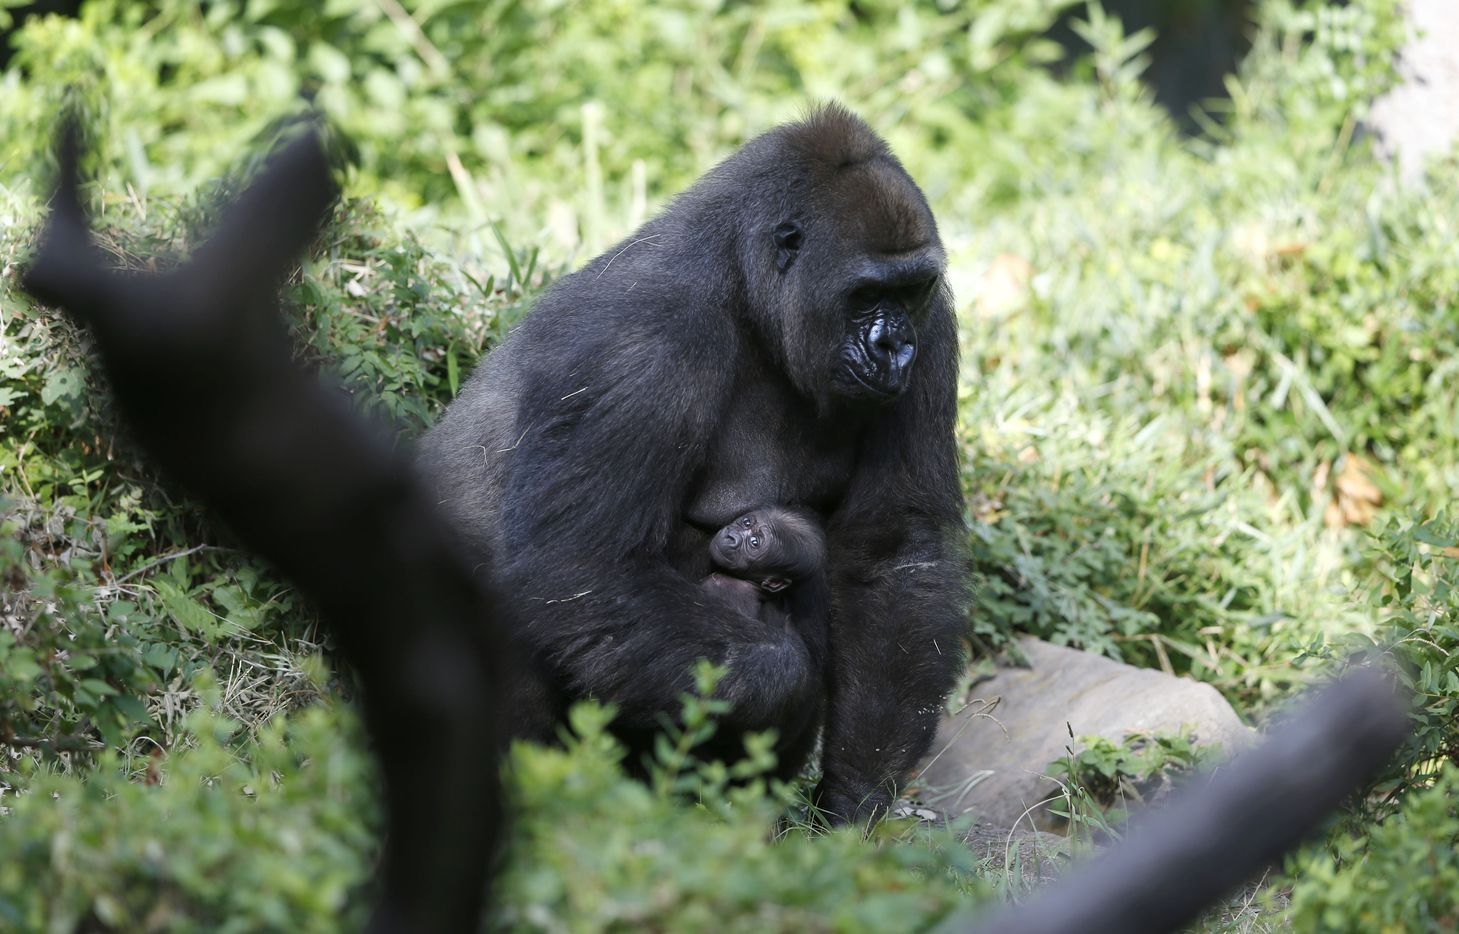 Hope holds her baby gorilla at the Dallas Zoo in Dallas on Thursday, July 5, 2018. The newborn gorilla is the fifth the zoo has cared for in nearly 50 years and the first born at the zoo since it welcomed Wakub, also known as Jake, in January 1998. (Vernon Bryant/The Dallas Morning News)